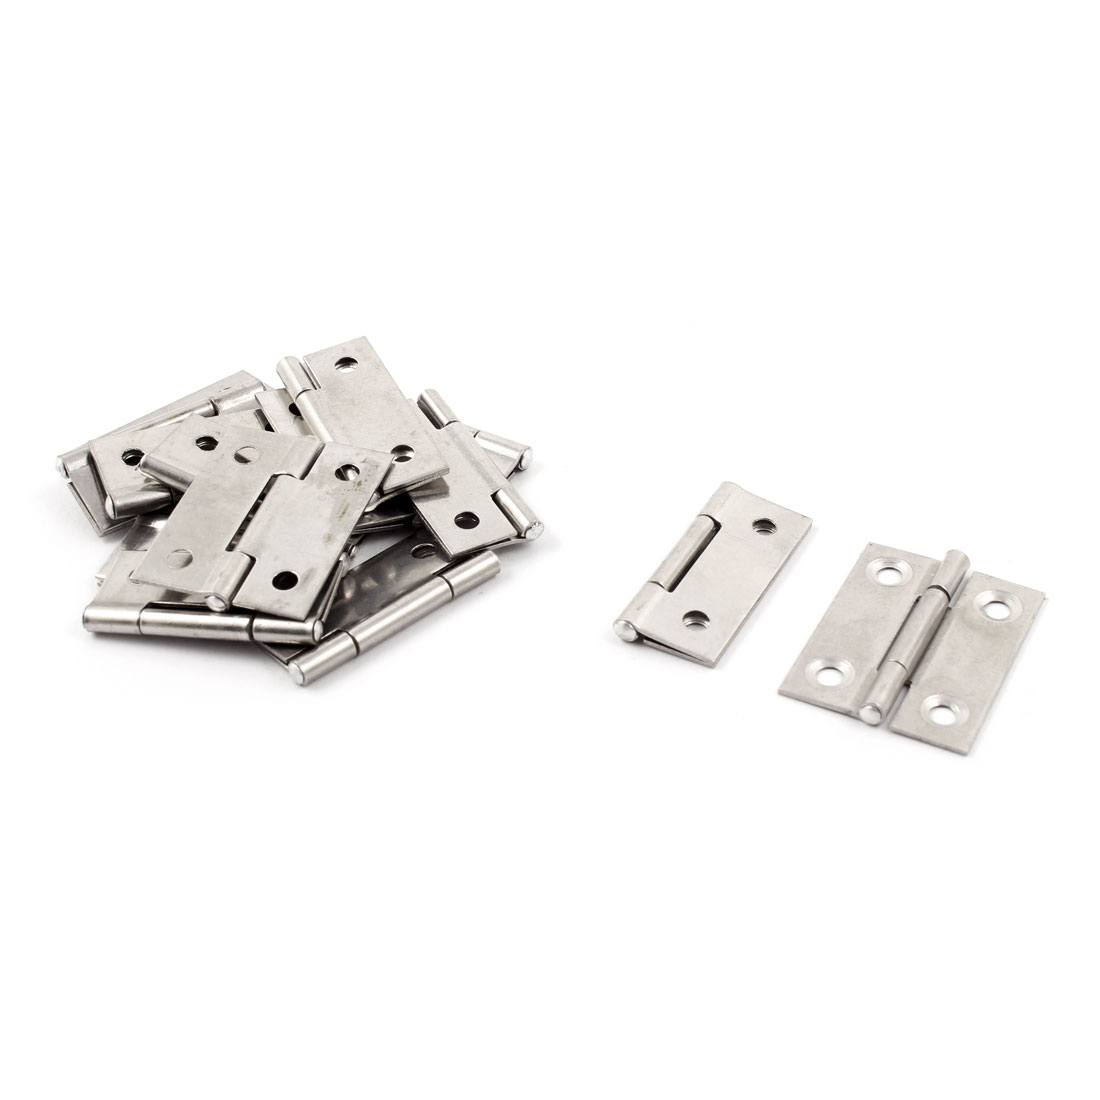 41mmx31mmx9mm Cupboard Cabinet Closet Square Corner Butt Door Hinge Silver Tone 14pcs